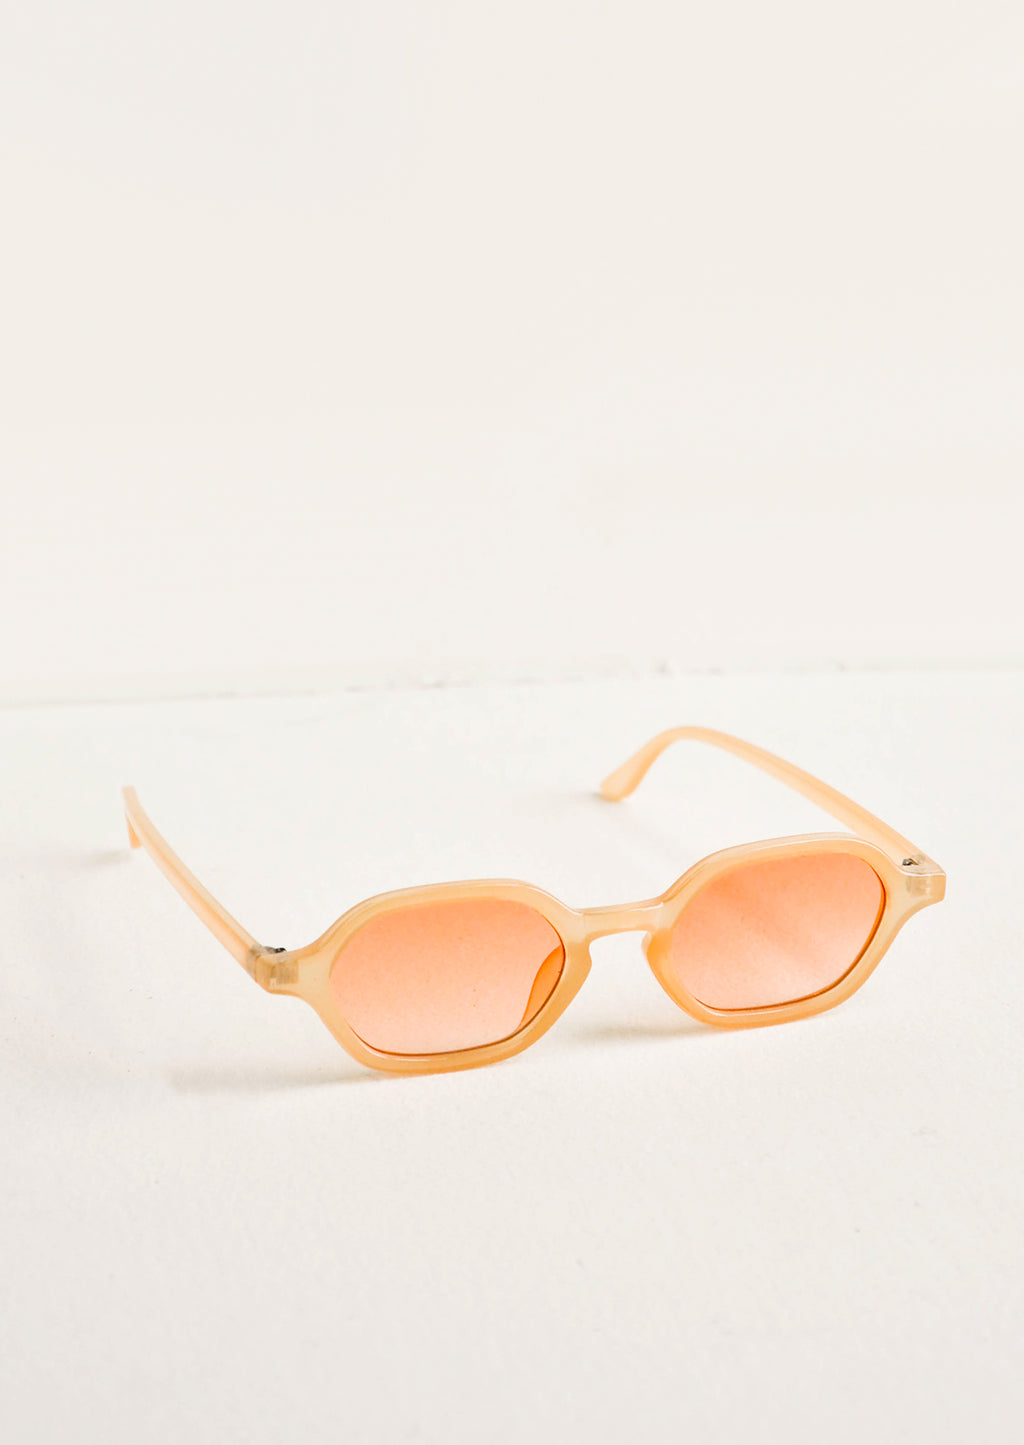 1: Best Coast Sunglasses in  - LEIF